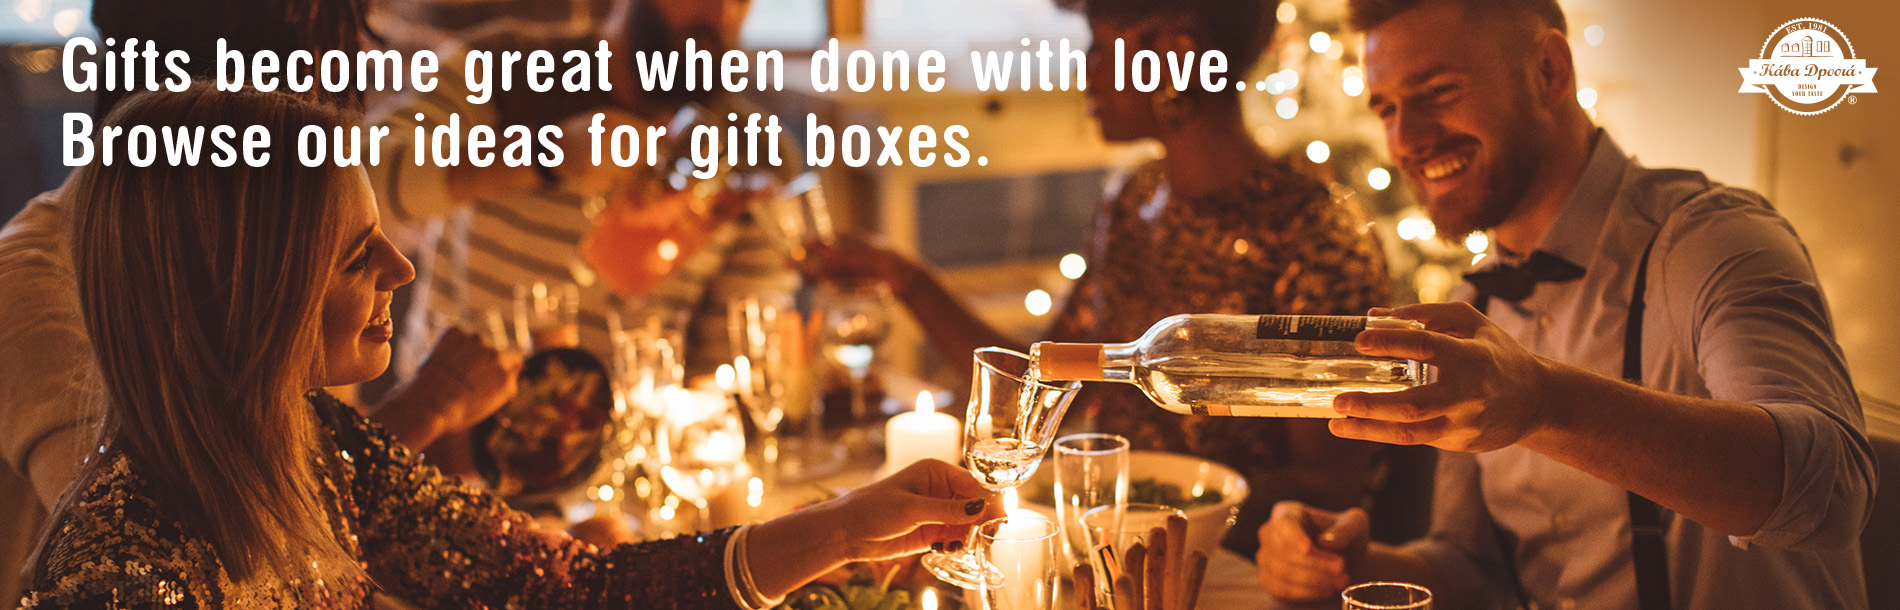 gift_boxes_banner